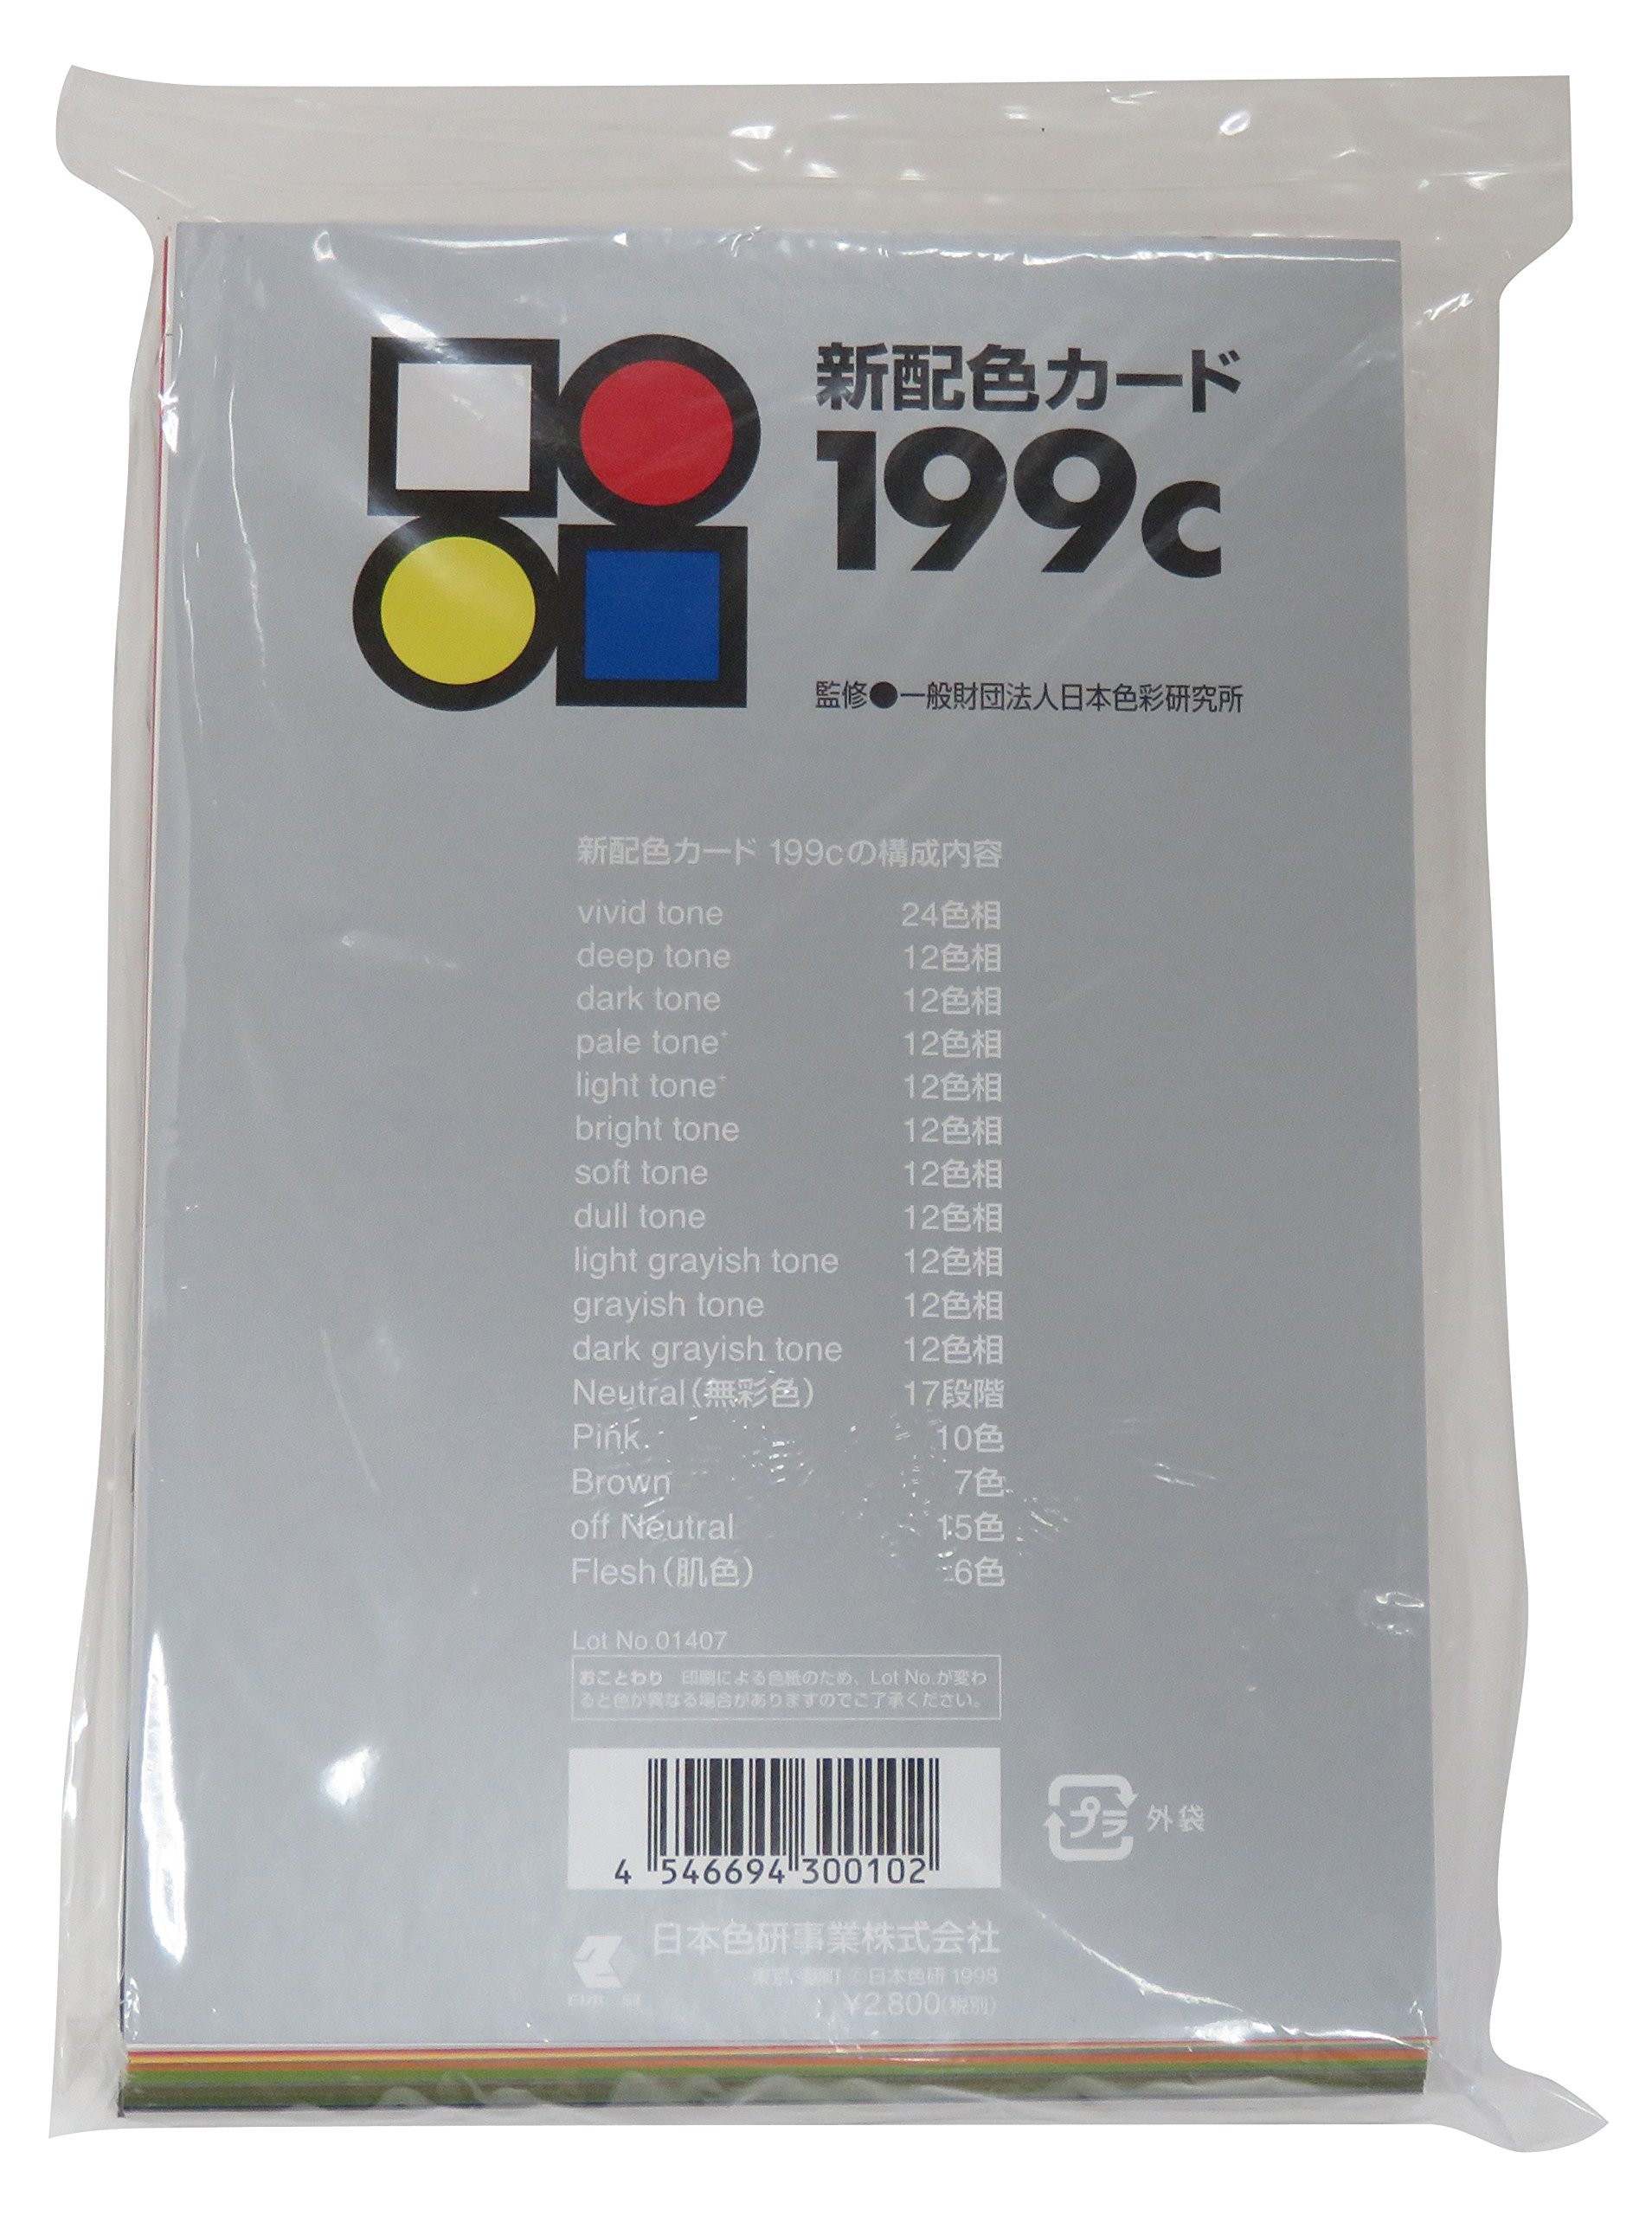 Japan Iroken new color scheme card 199c by Japan Iro-ken business